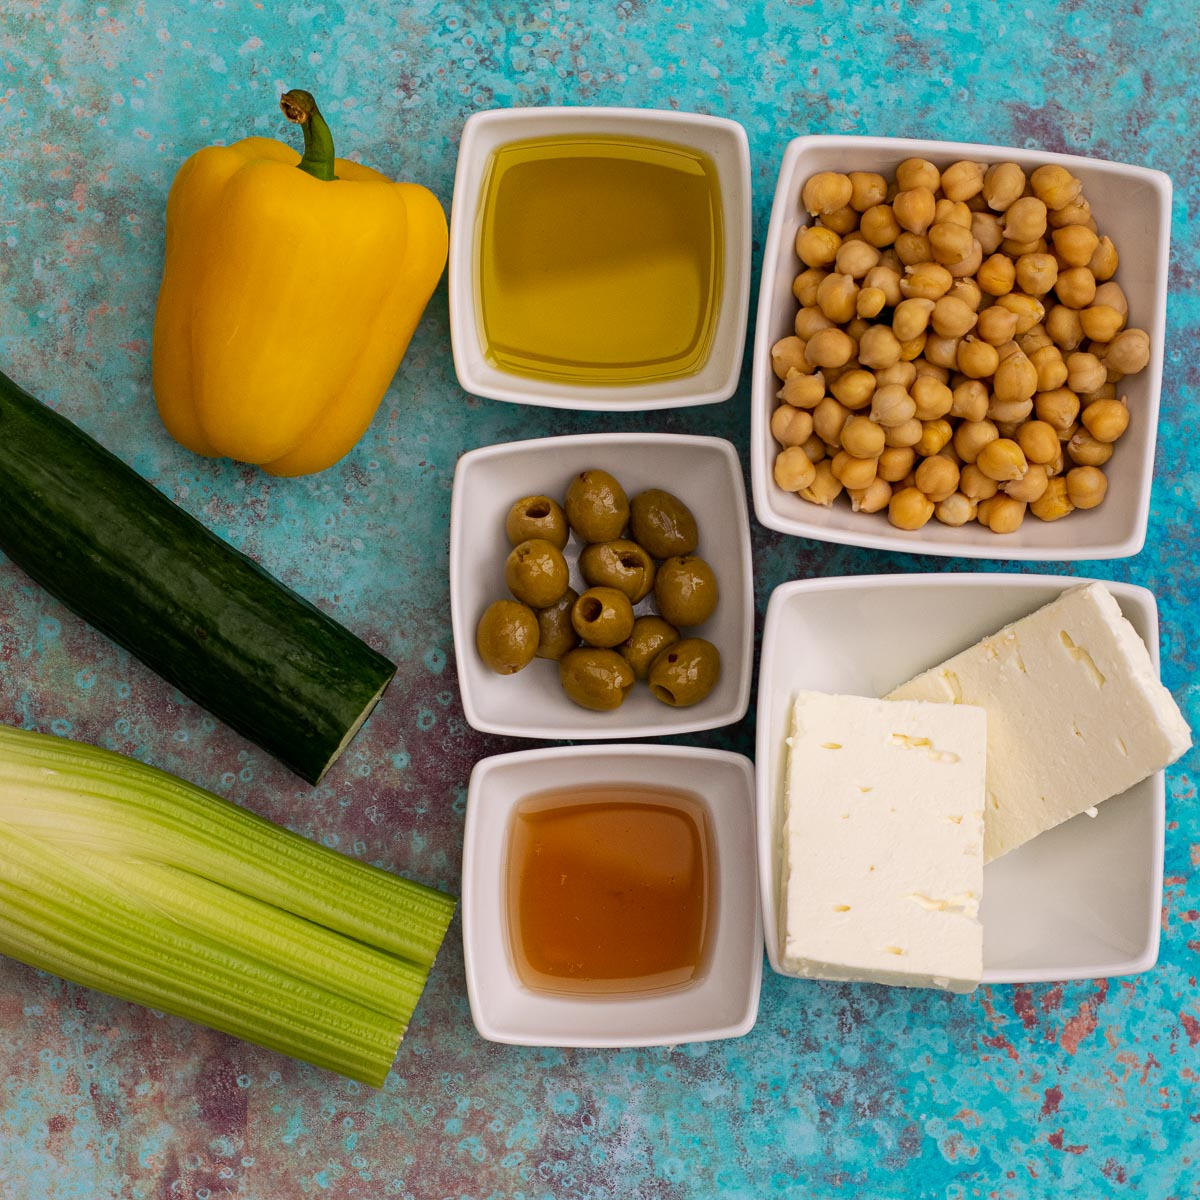 Ingredients for Feta Chickpea Salad on a blue background